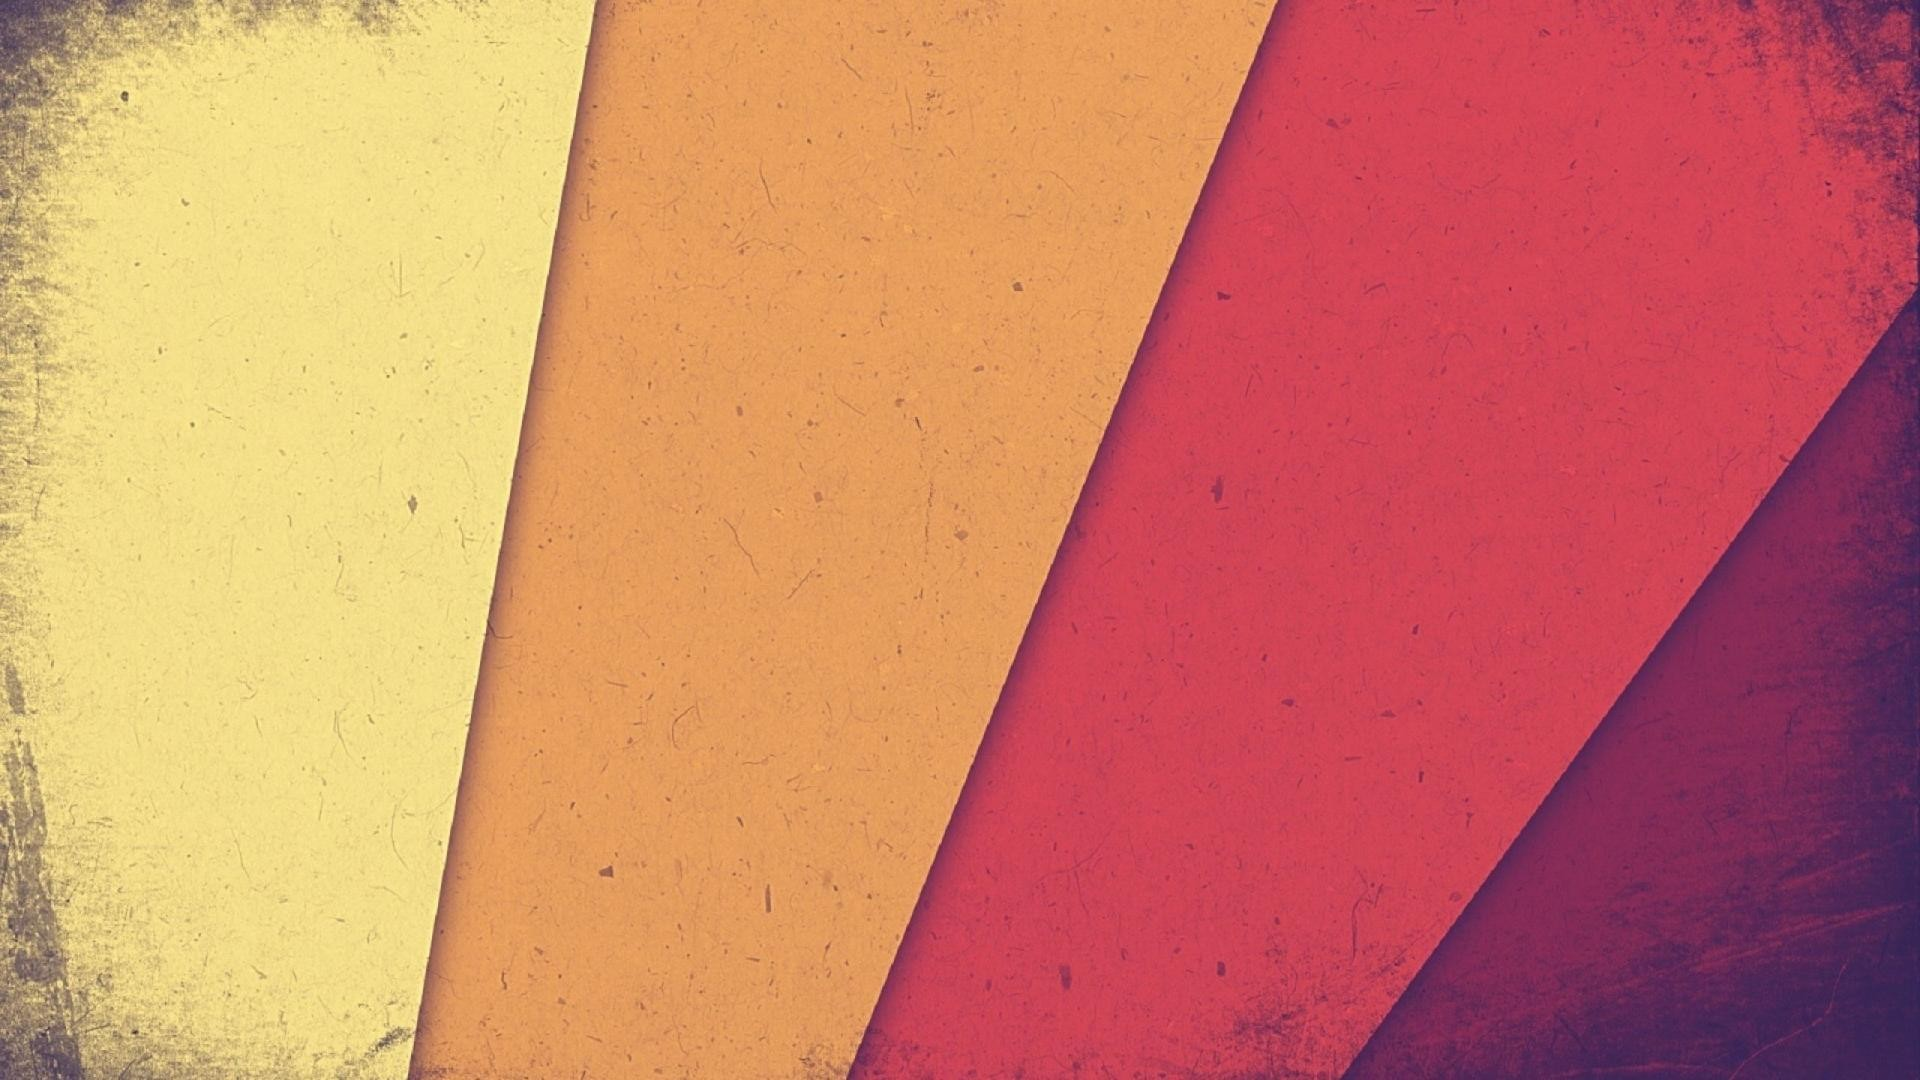 Retro Iphone 6 Wallpaper Hd: 40+ Vintage Backgrounds ·① Download Free Stunning